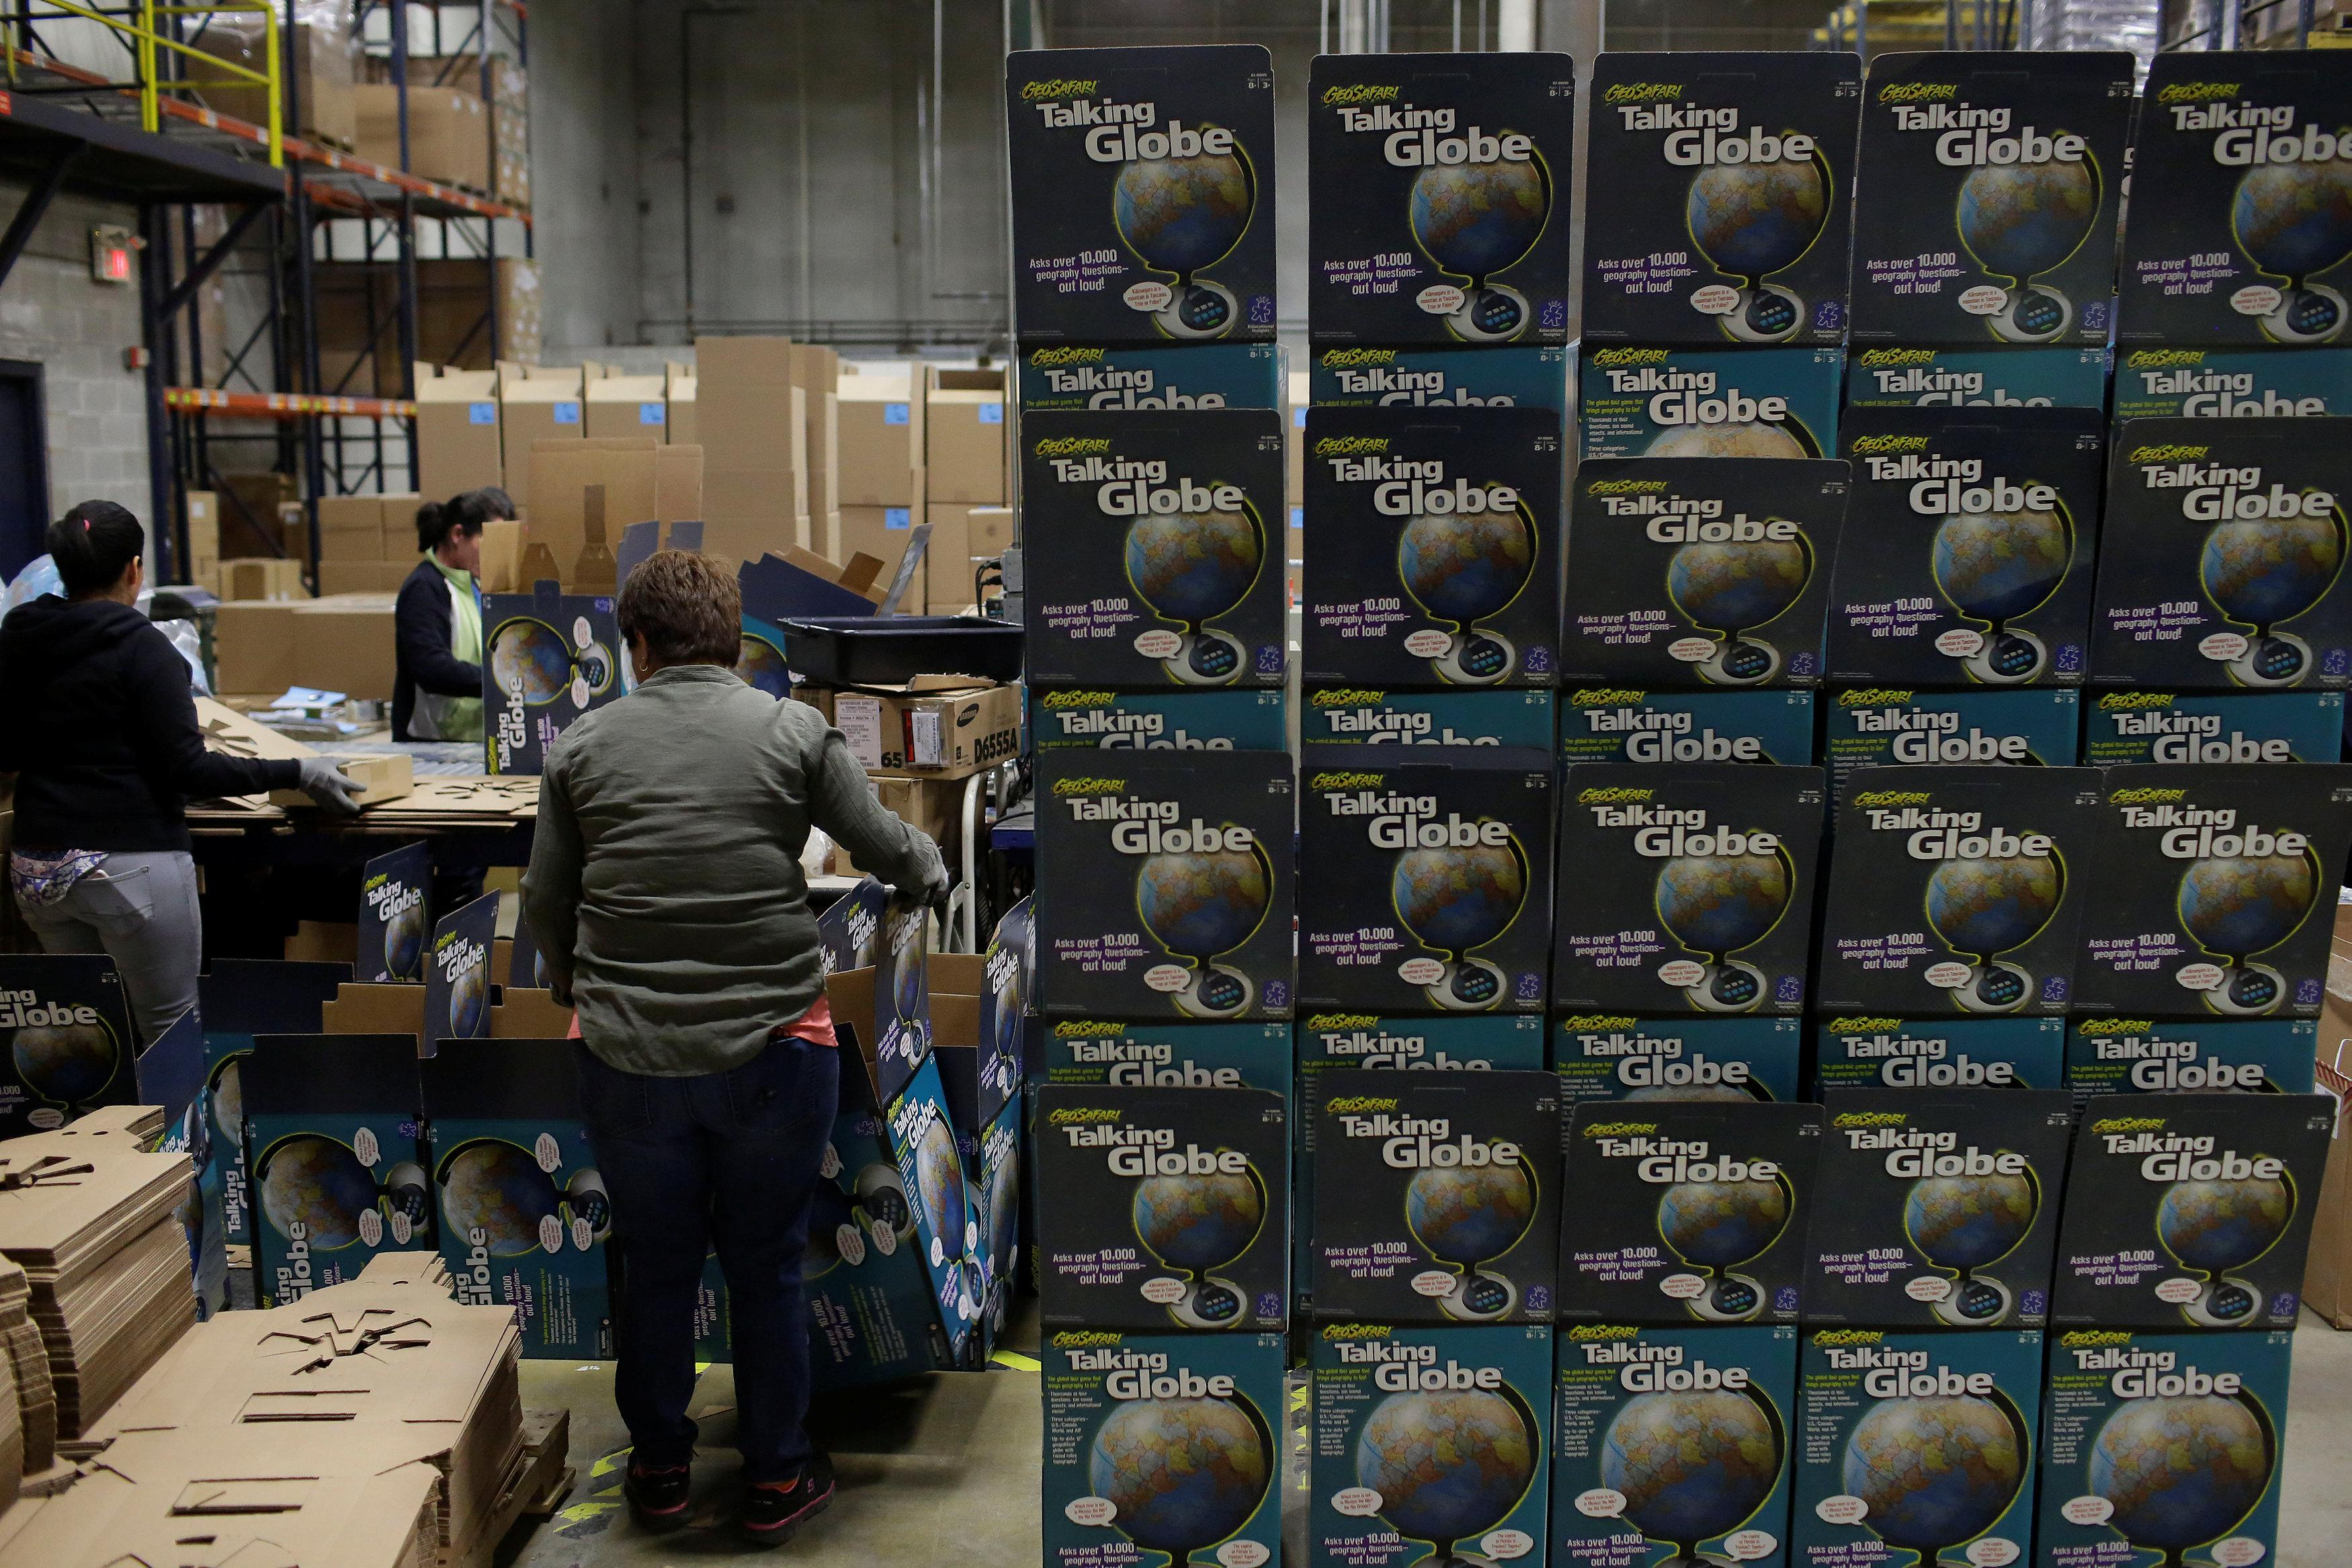 Exhausted toys r us suppliers weigh options as huge retailer toys r us vendor learning resources workers assemble boxes for globes at the warehouse buycottarizona Images